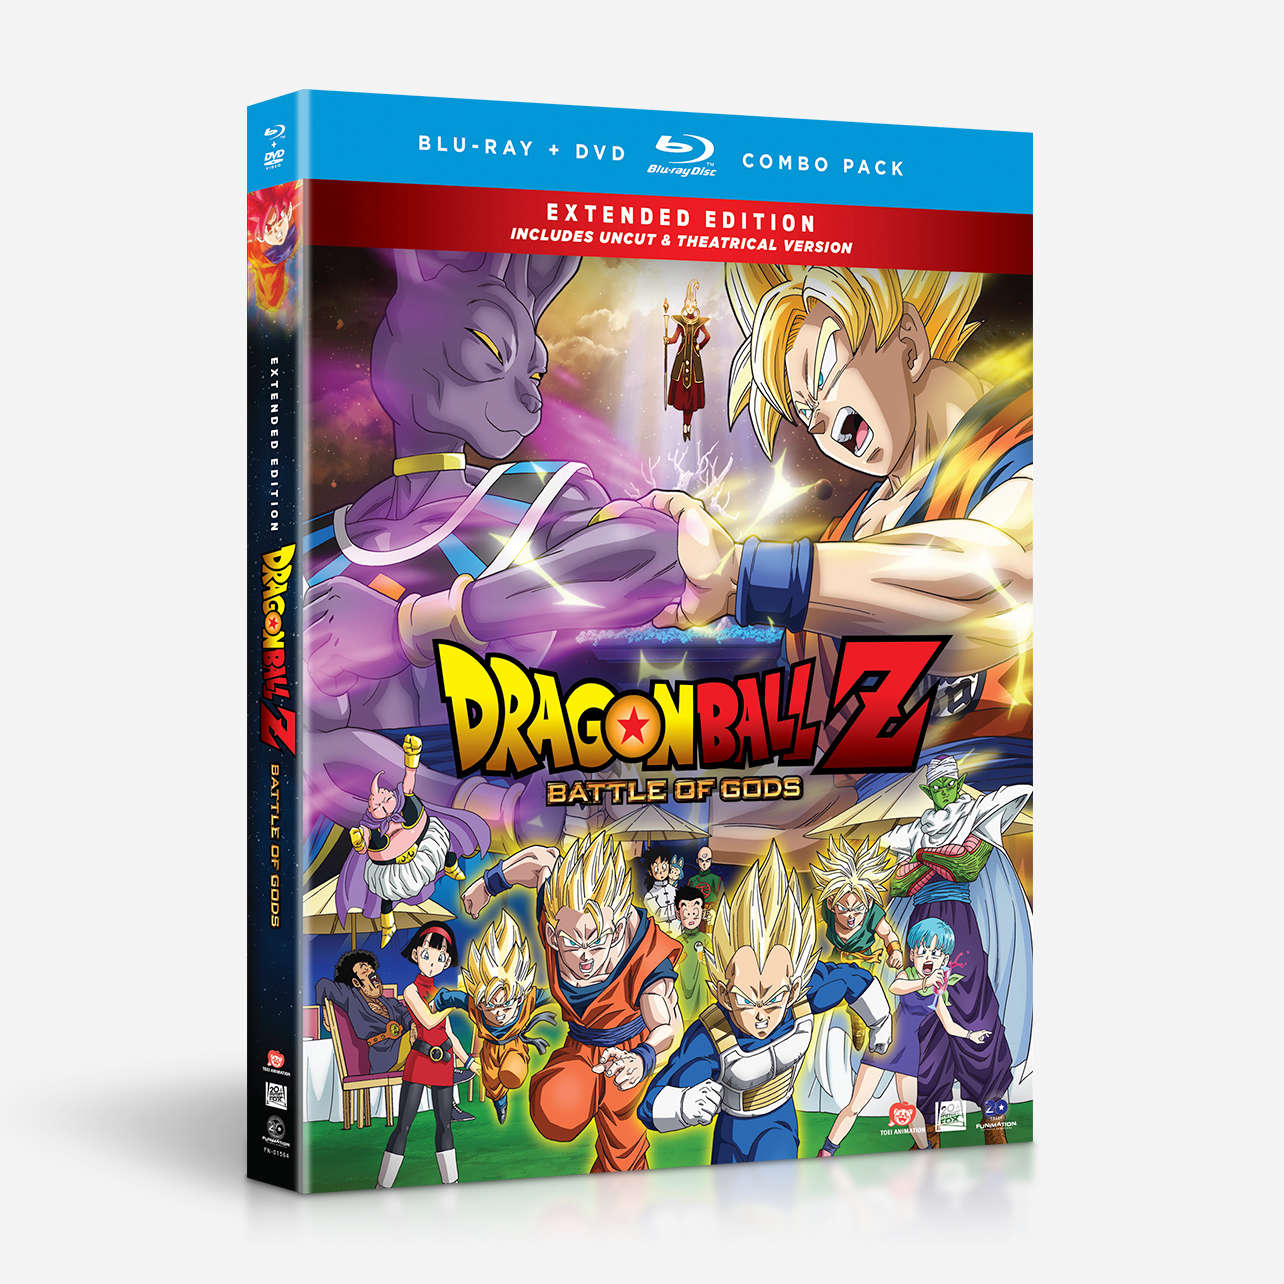 Battle of Gods (Extended Edition) home-video